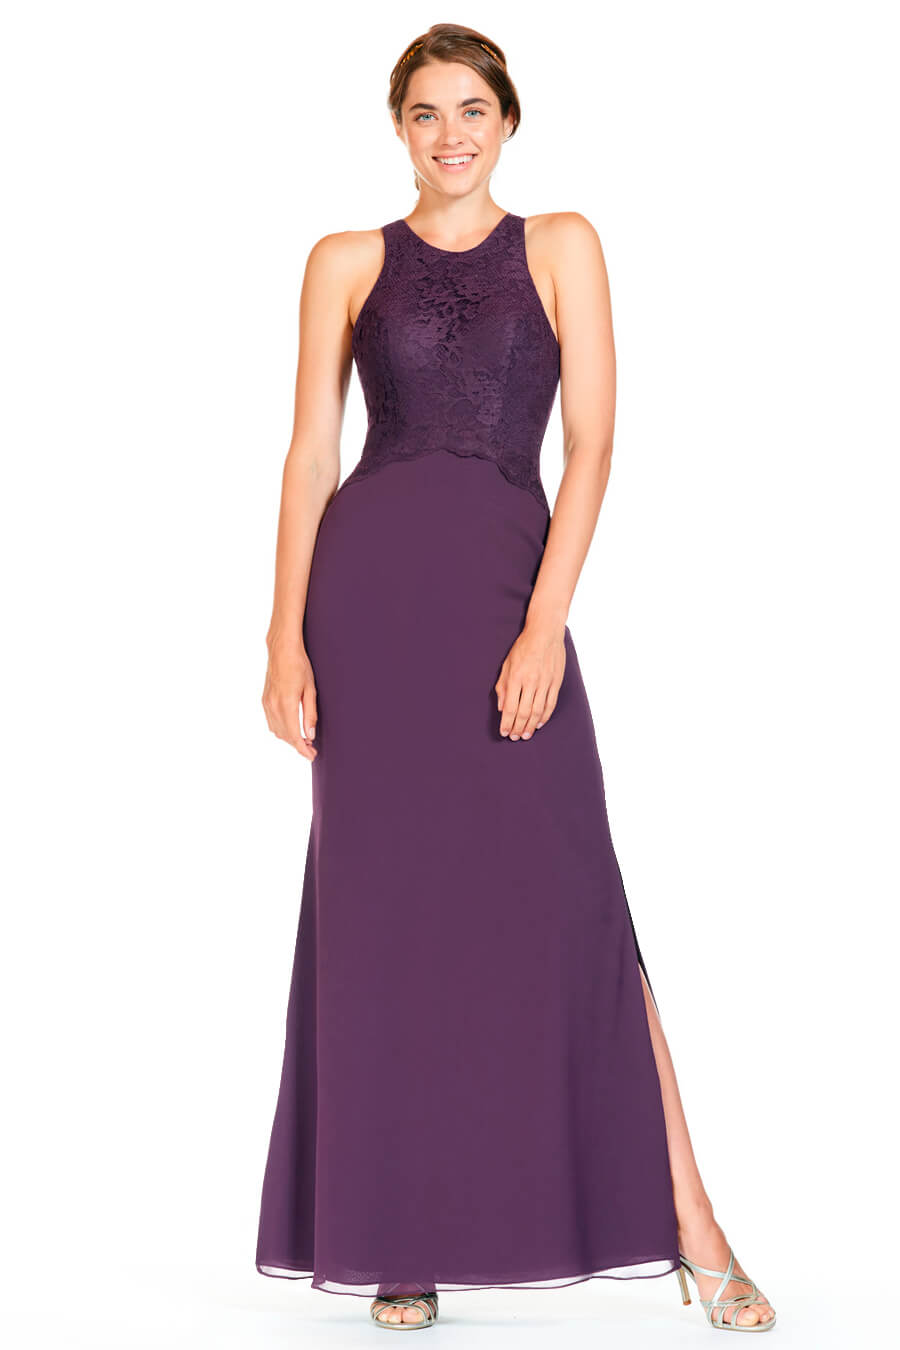 STYLE: 1826 (available short 1826-s) | Bridesmaid Dresses, Evening ...